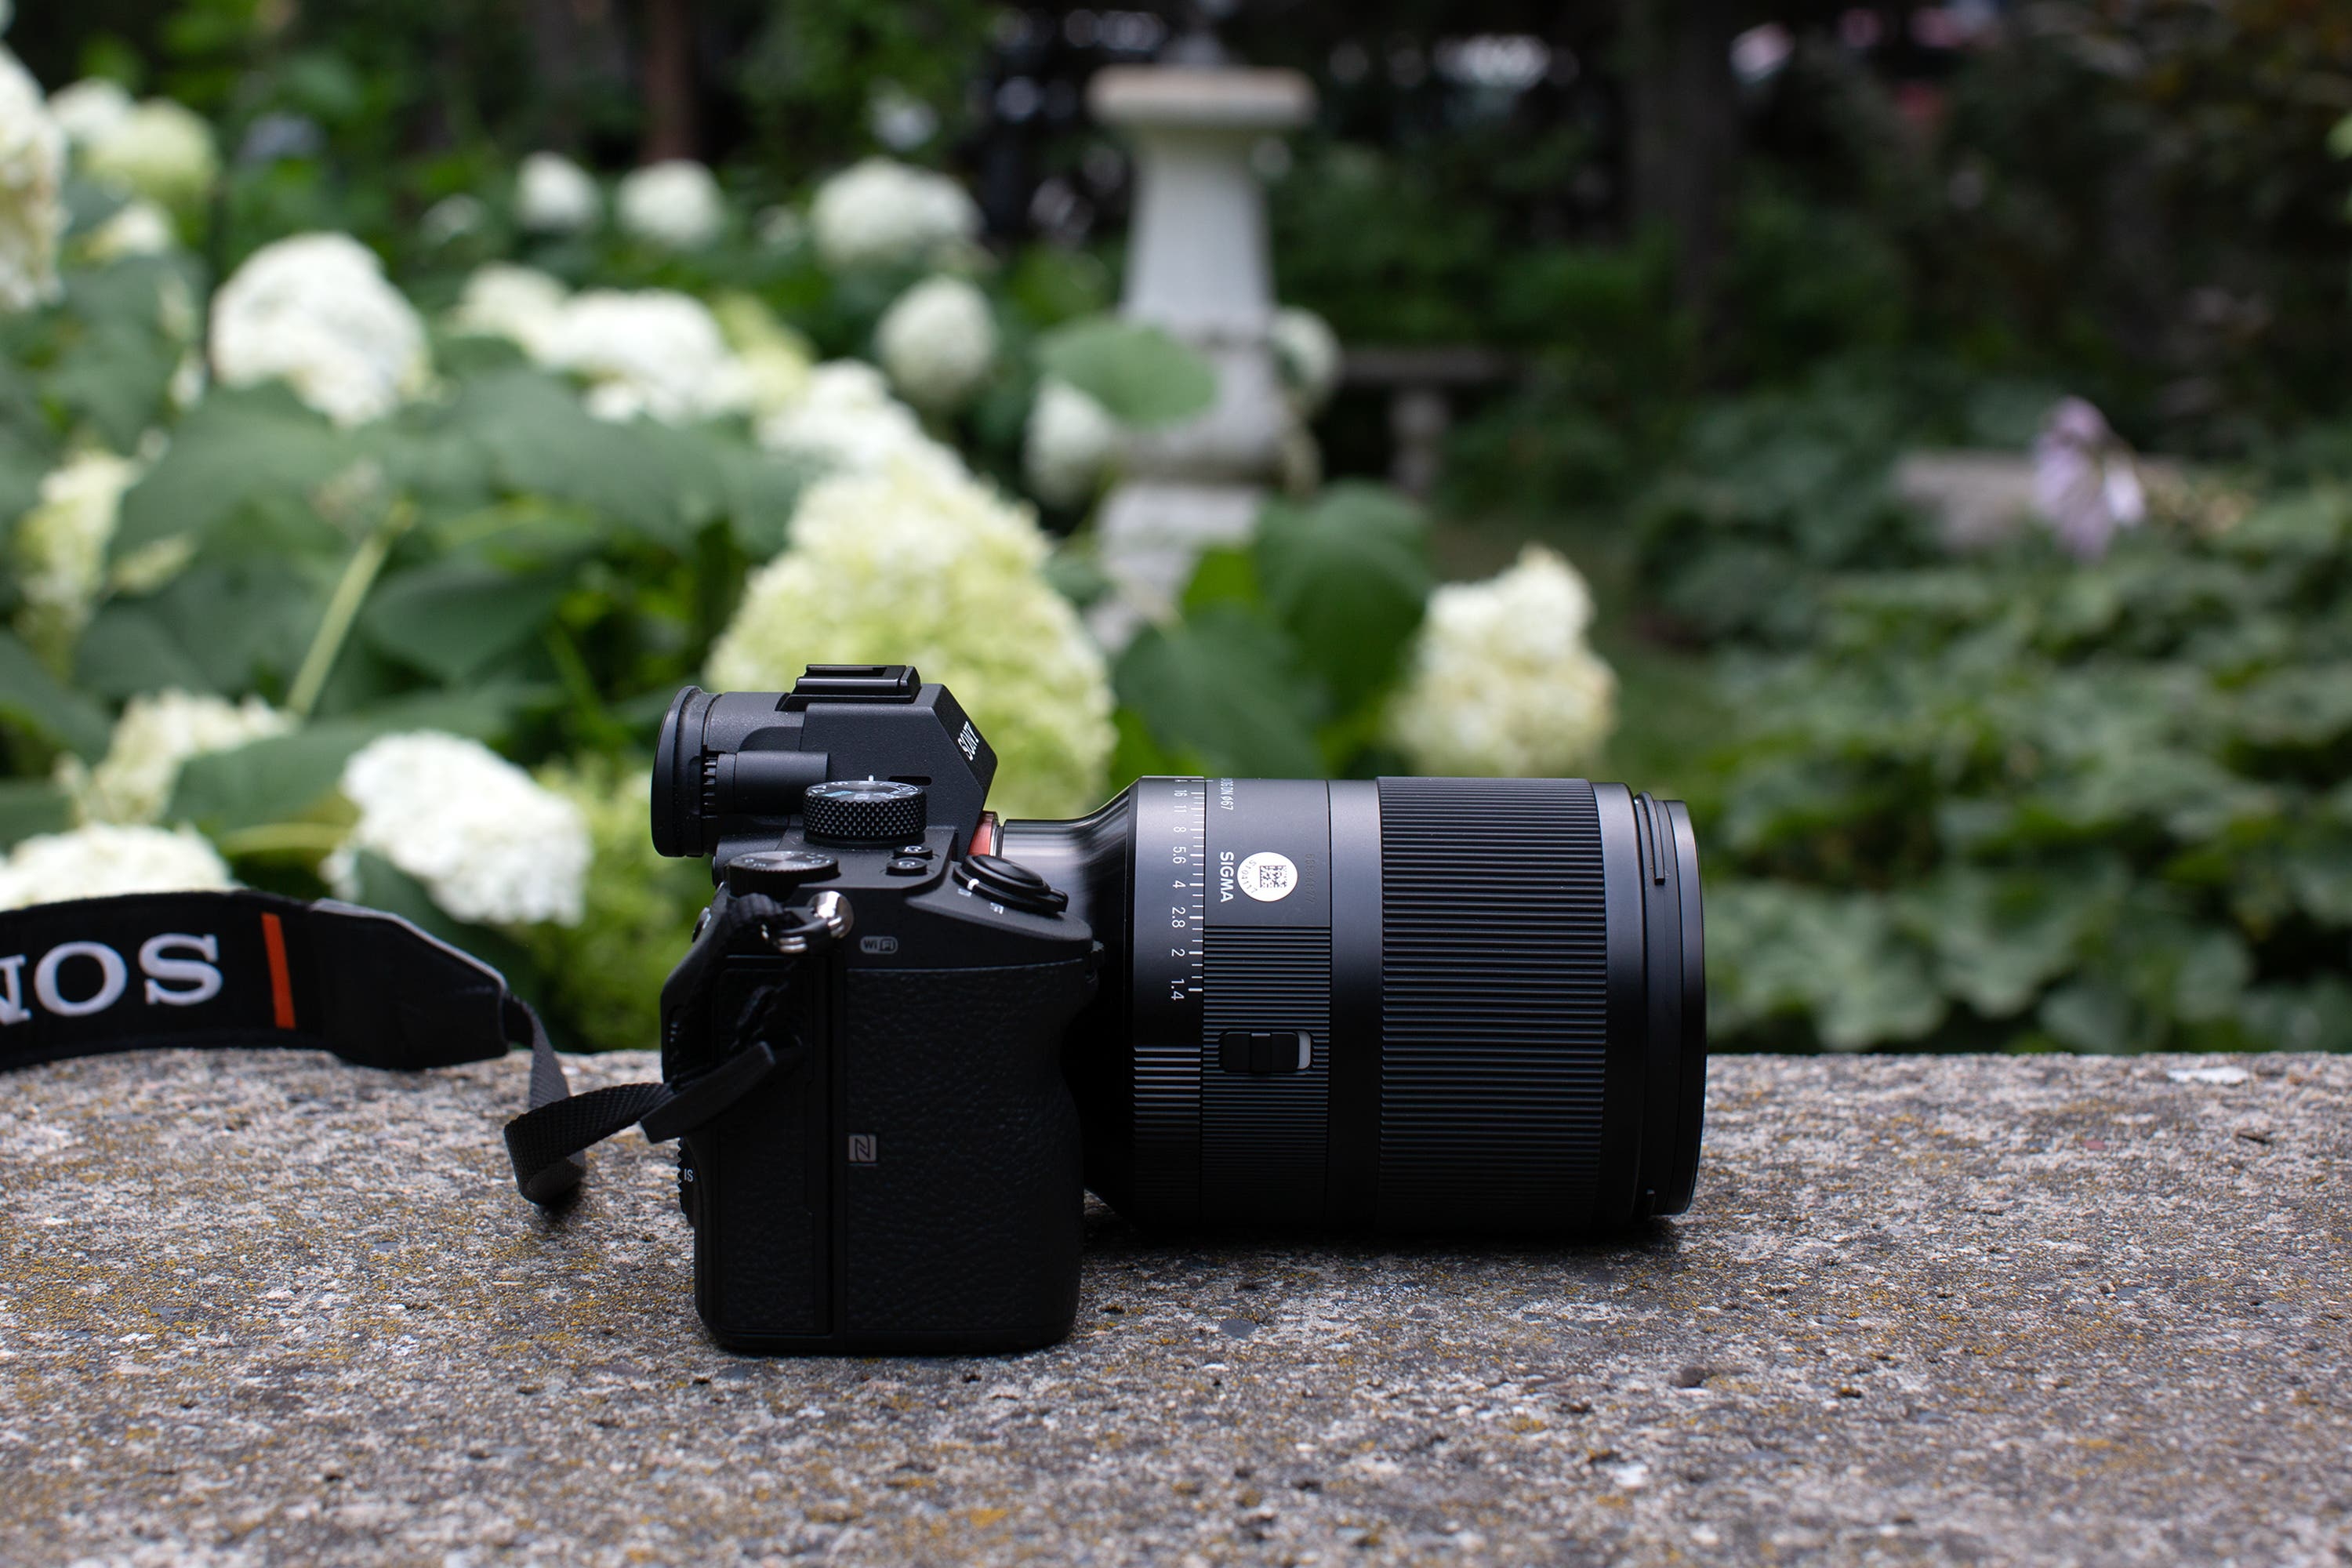 Beautiful, Sharp, And A Bit Boring. Sigma 35mm F1.4 Review